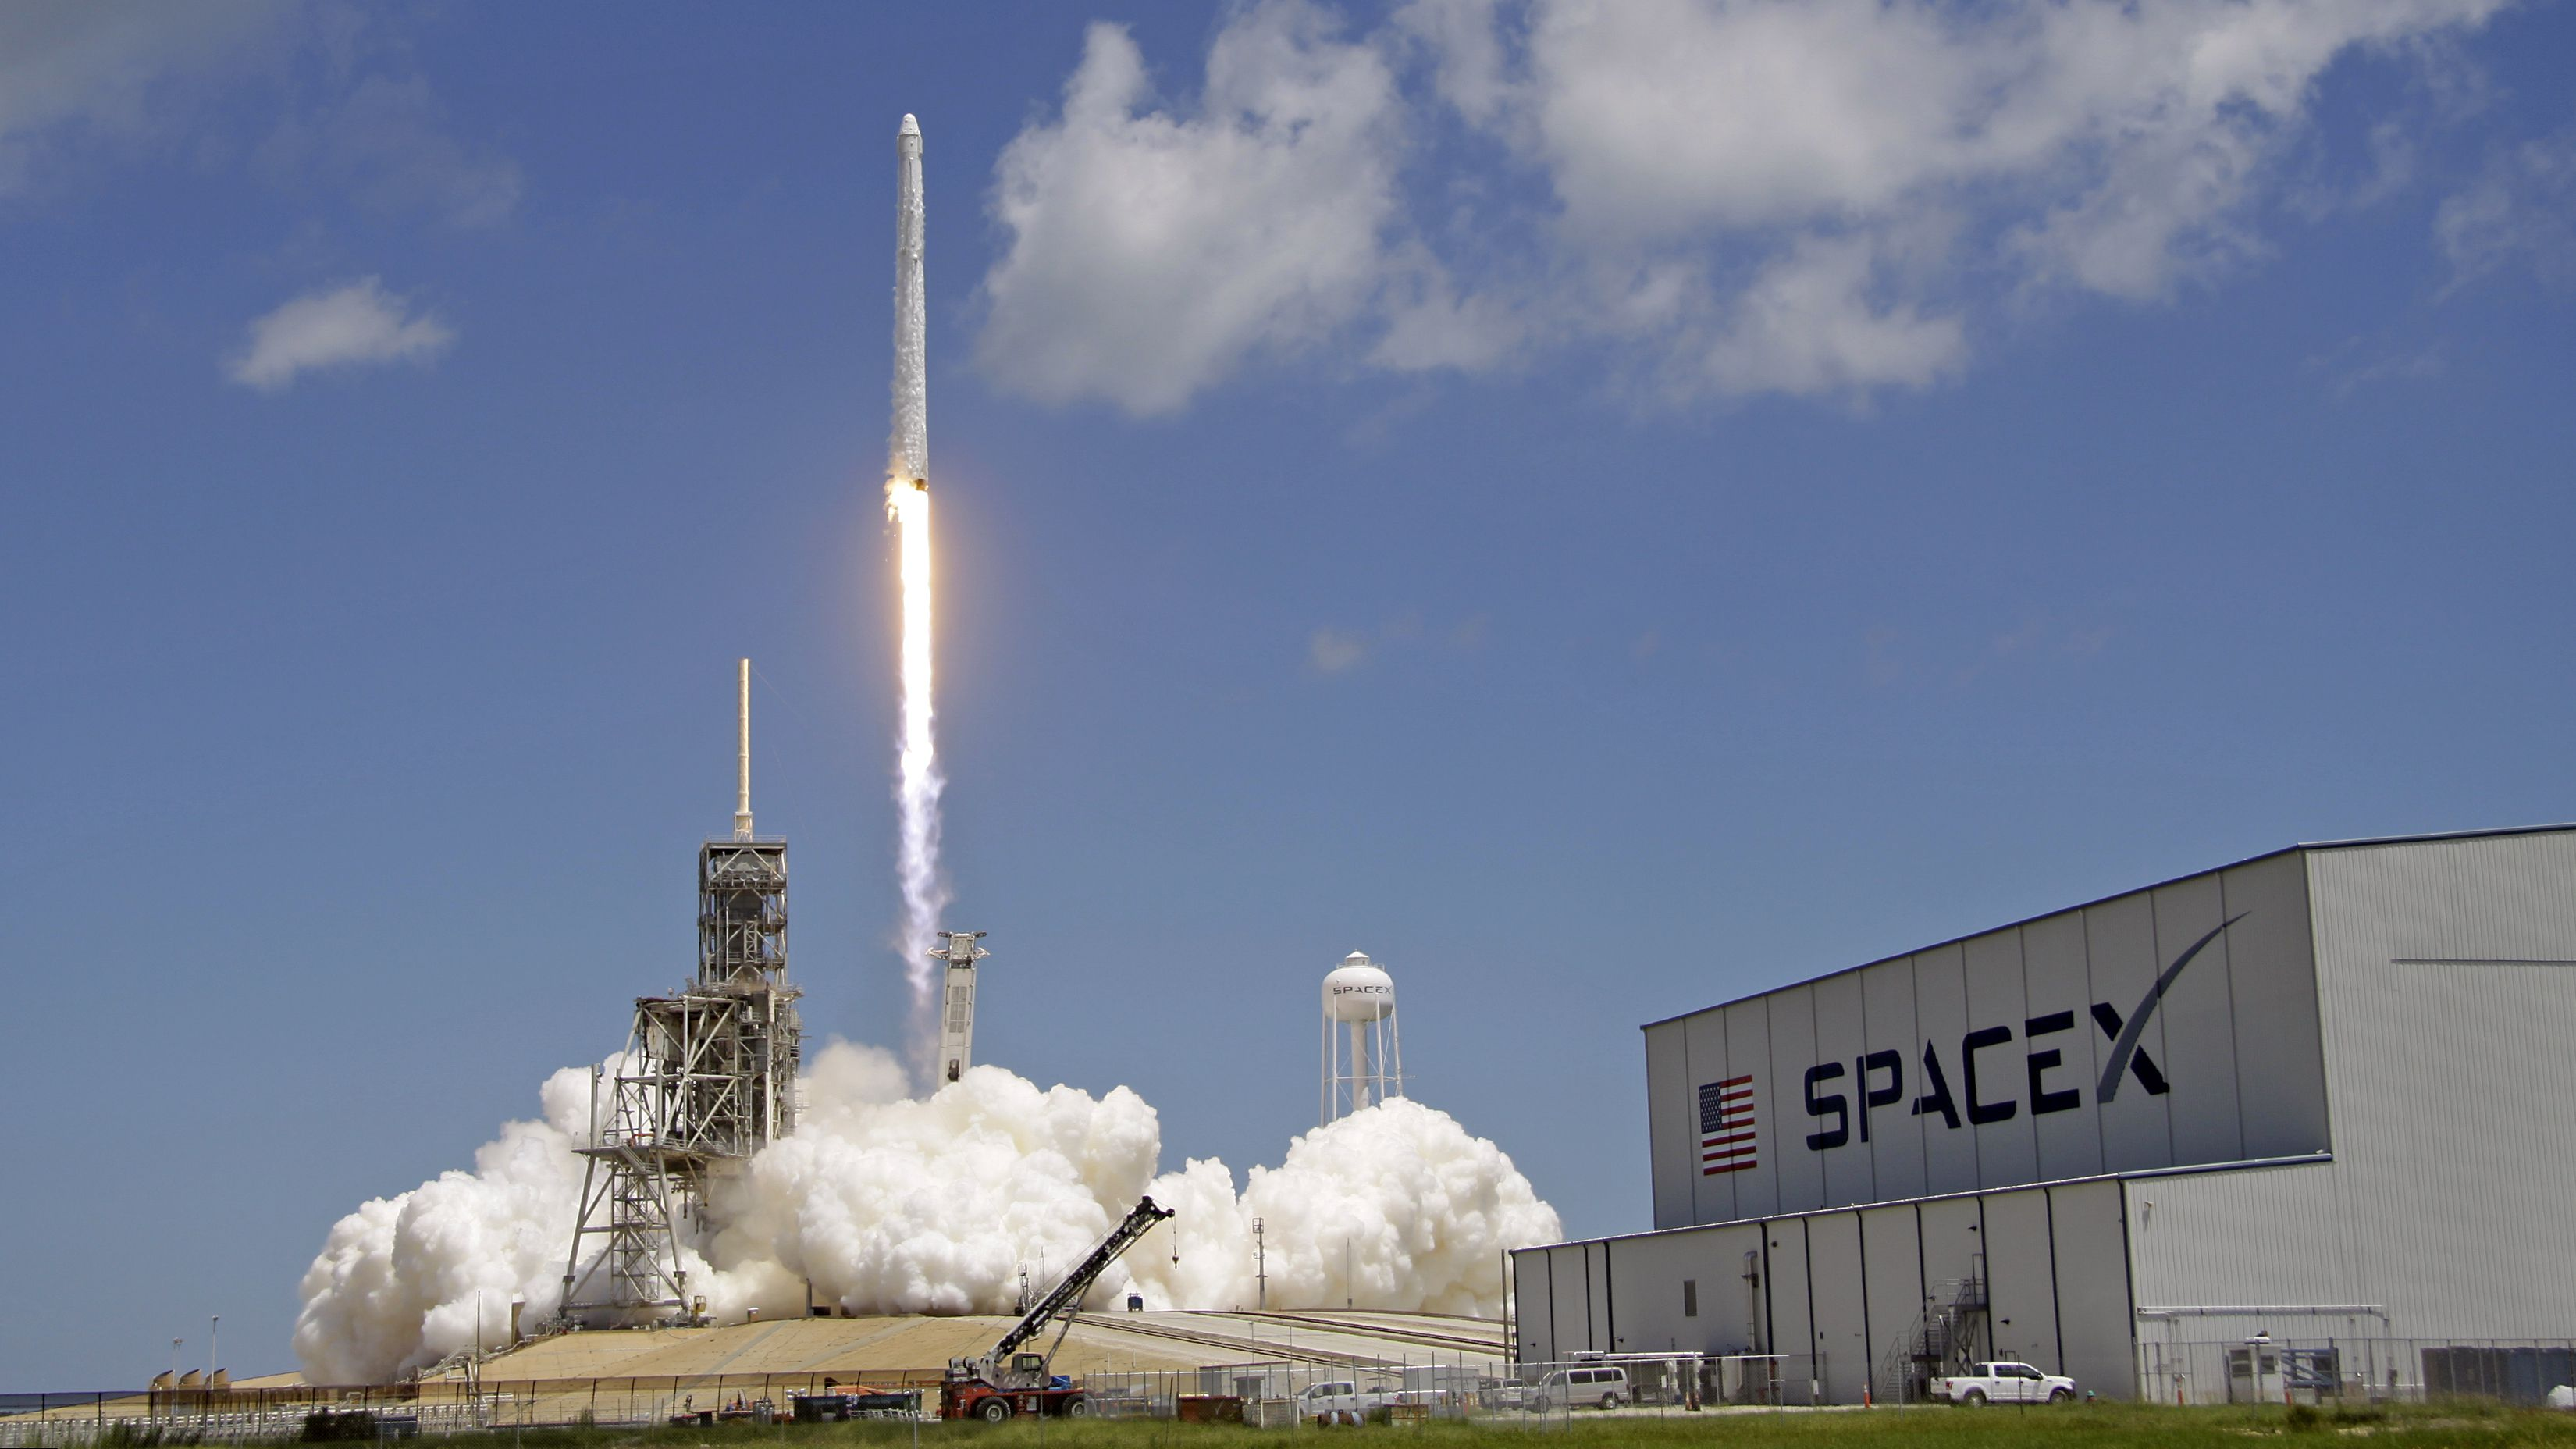 Spacex-rocket-launch-how-to-watch-